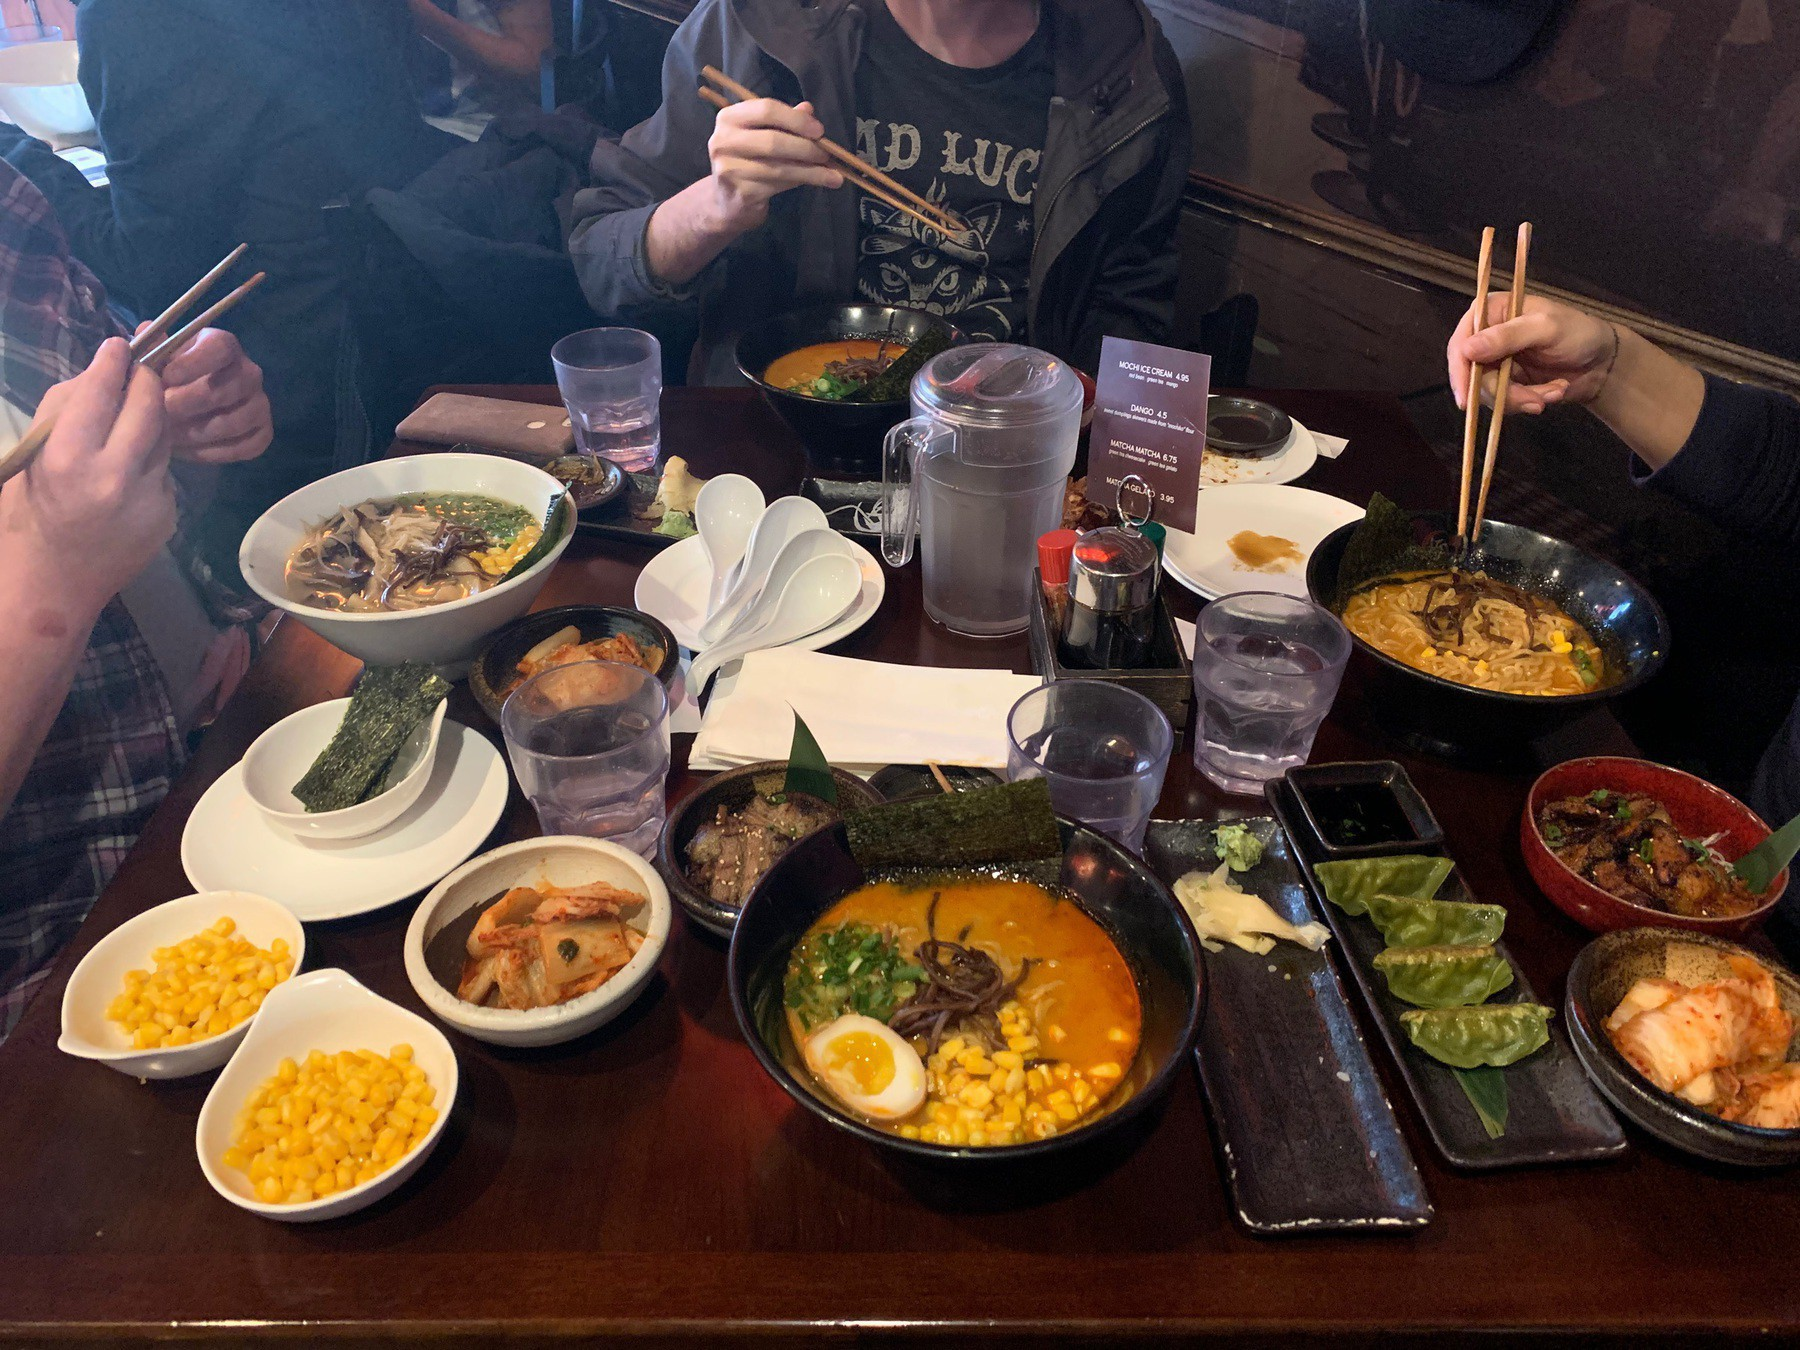 full table of food including sushi and ramen